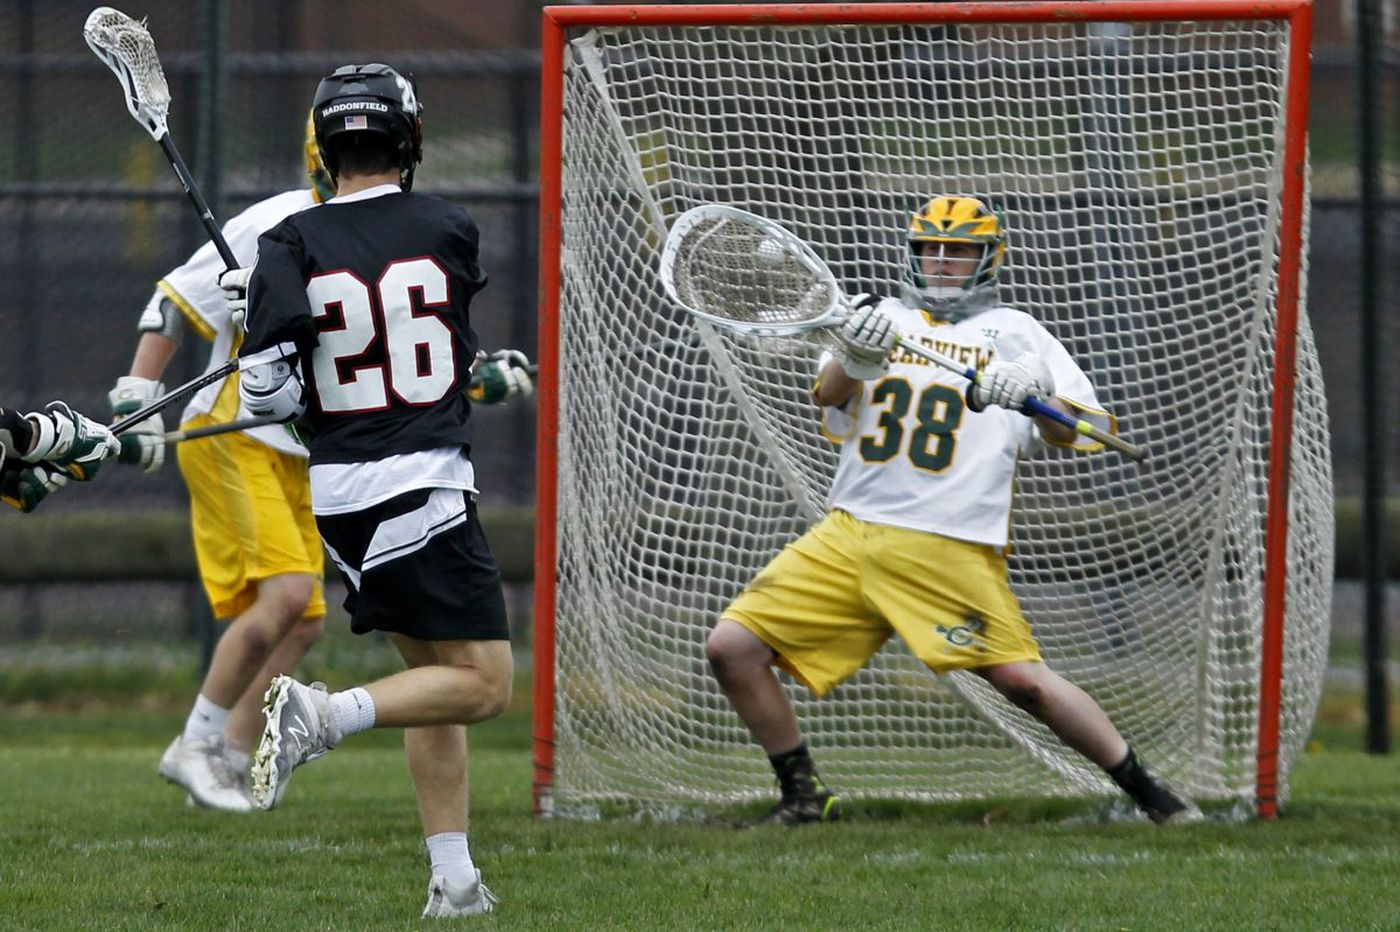 Wednesday's South Jersey roundup: Clearview upsets Northern Burlington in boys' lacrosse sectionals